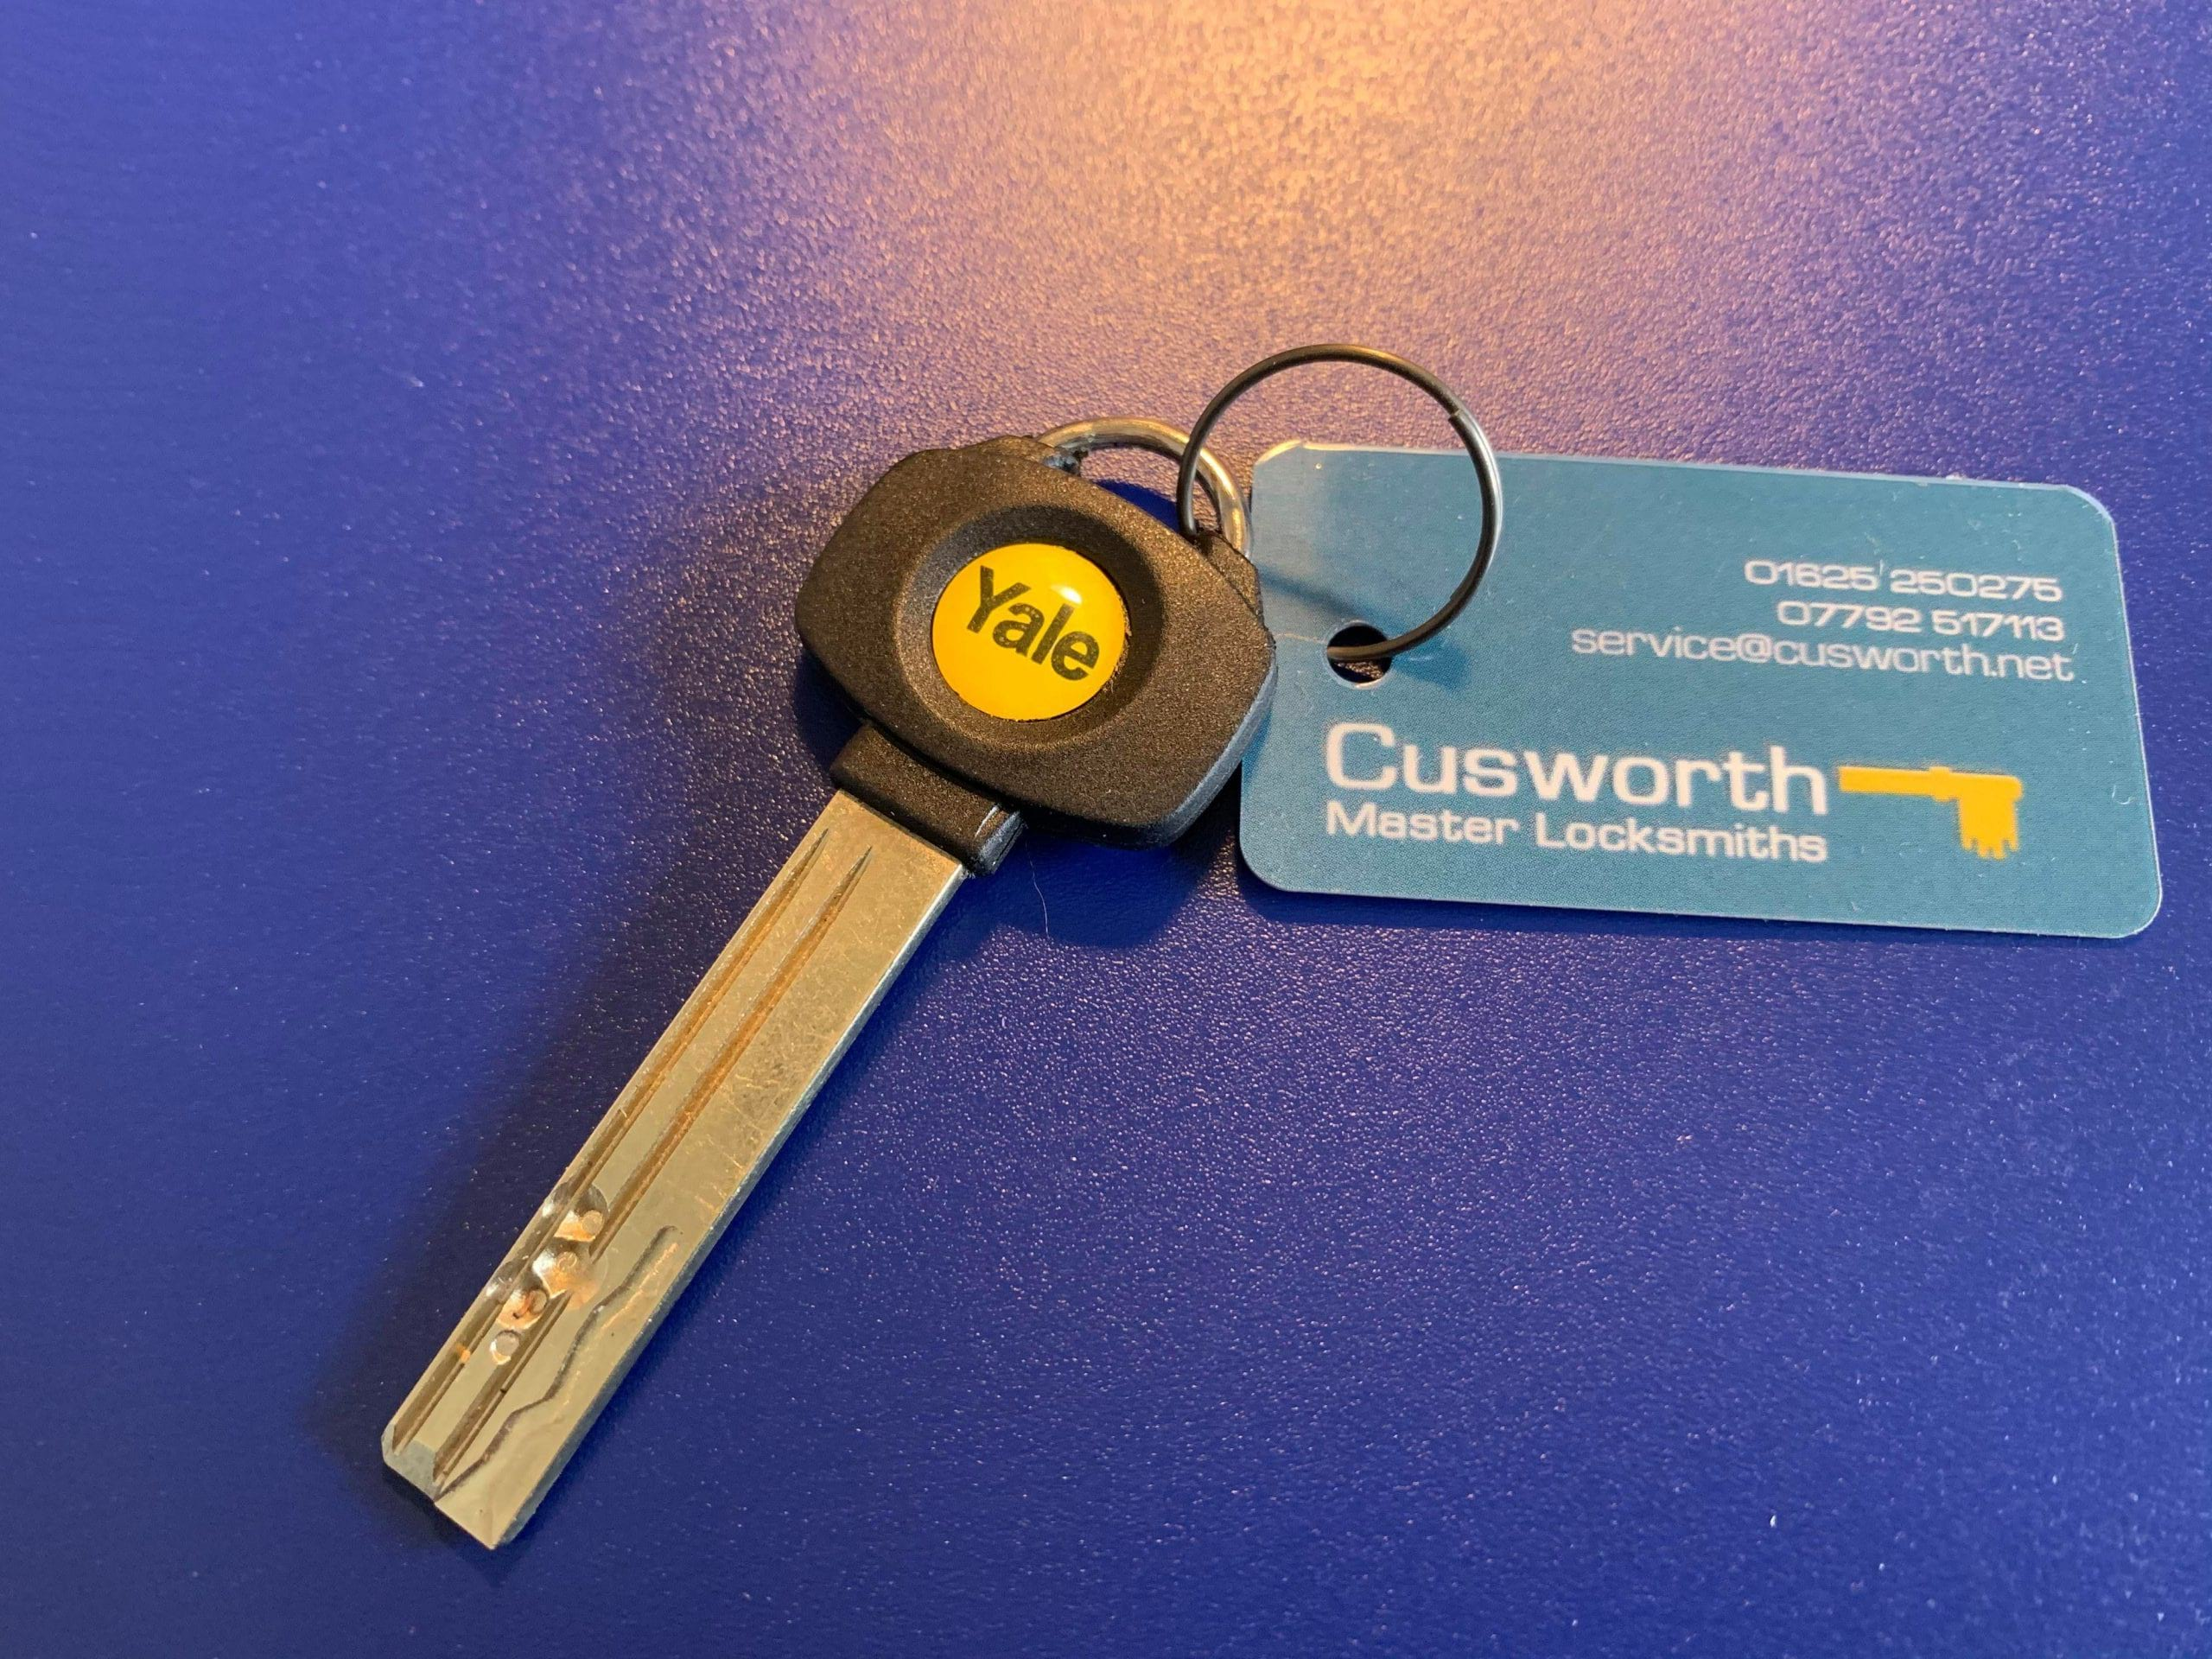 Yale Platinum 3 star keys cut by Cusworth Master Locksmiths.